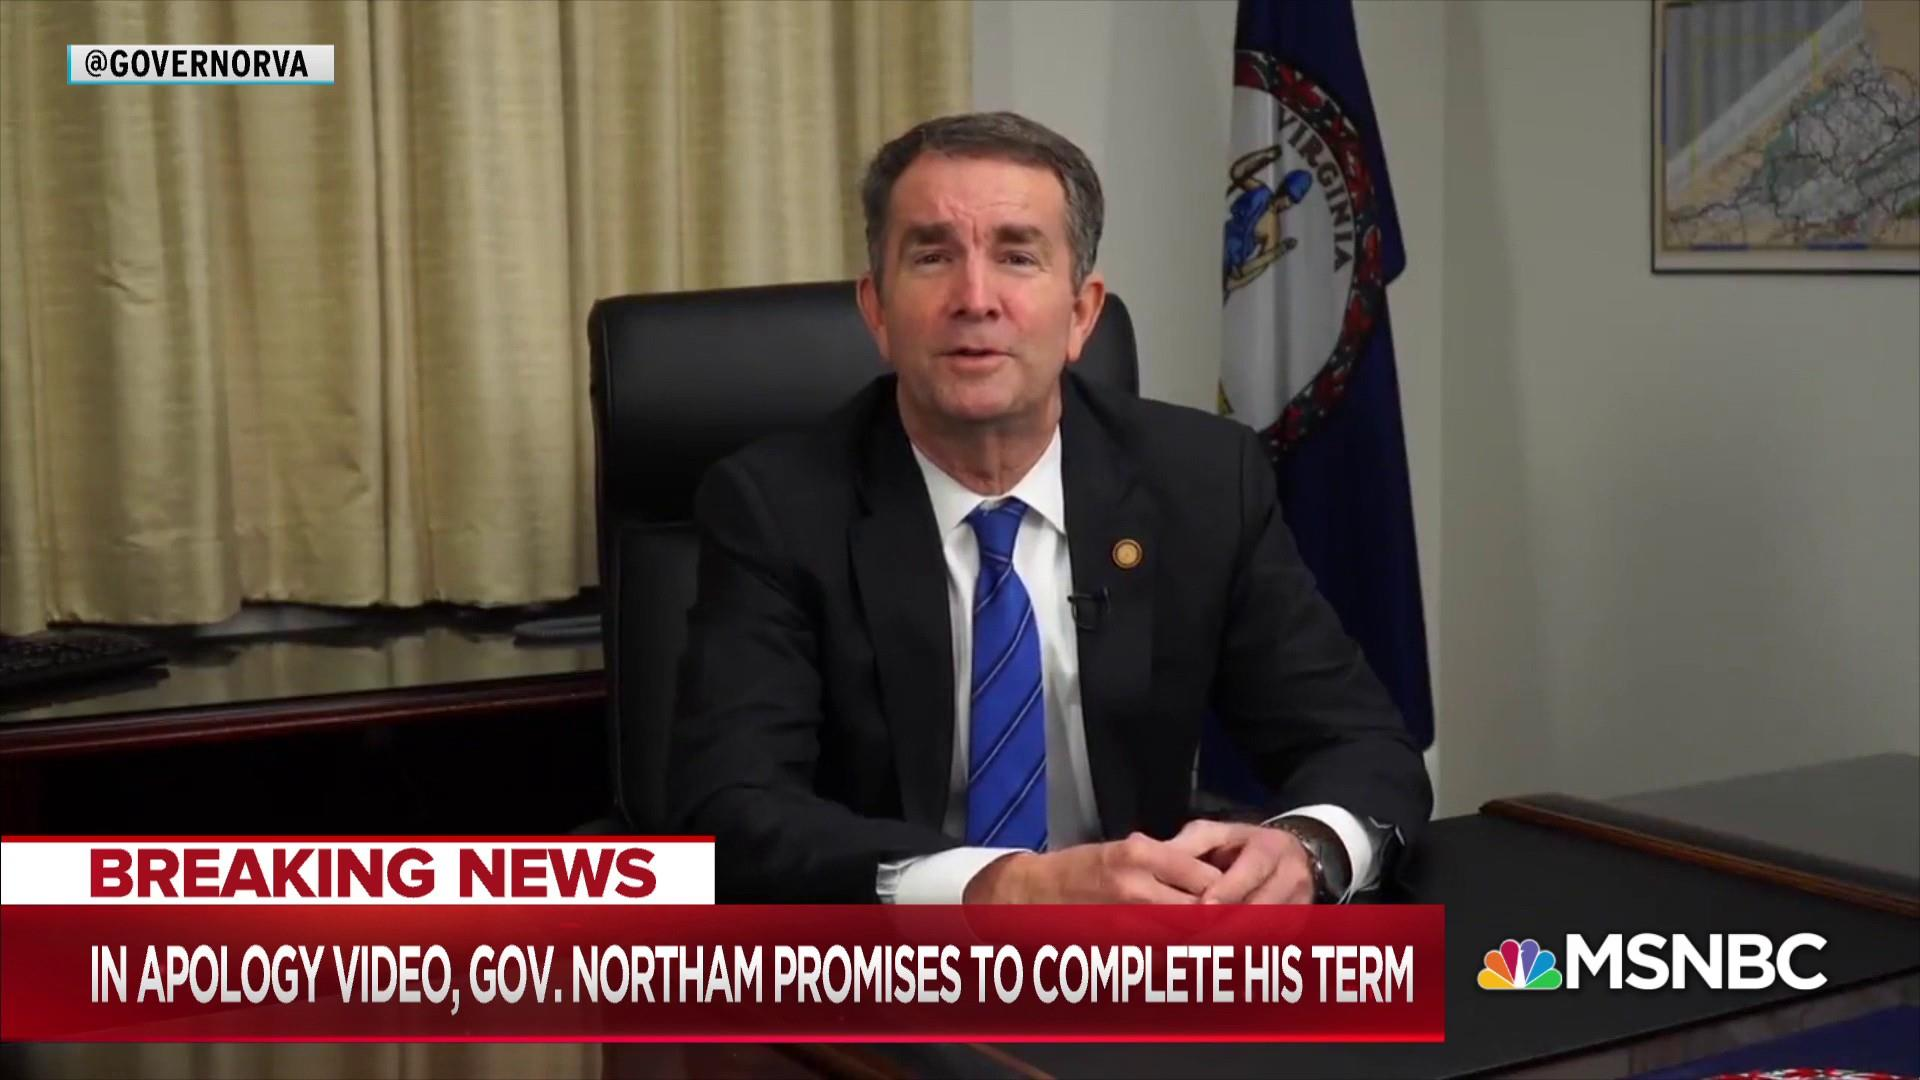 Racist photo prompts call for Virginia governor's resignation